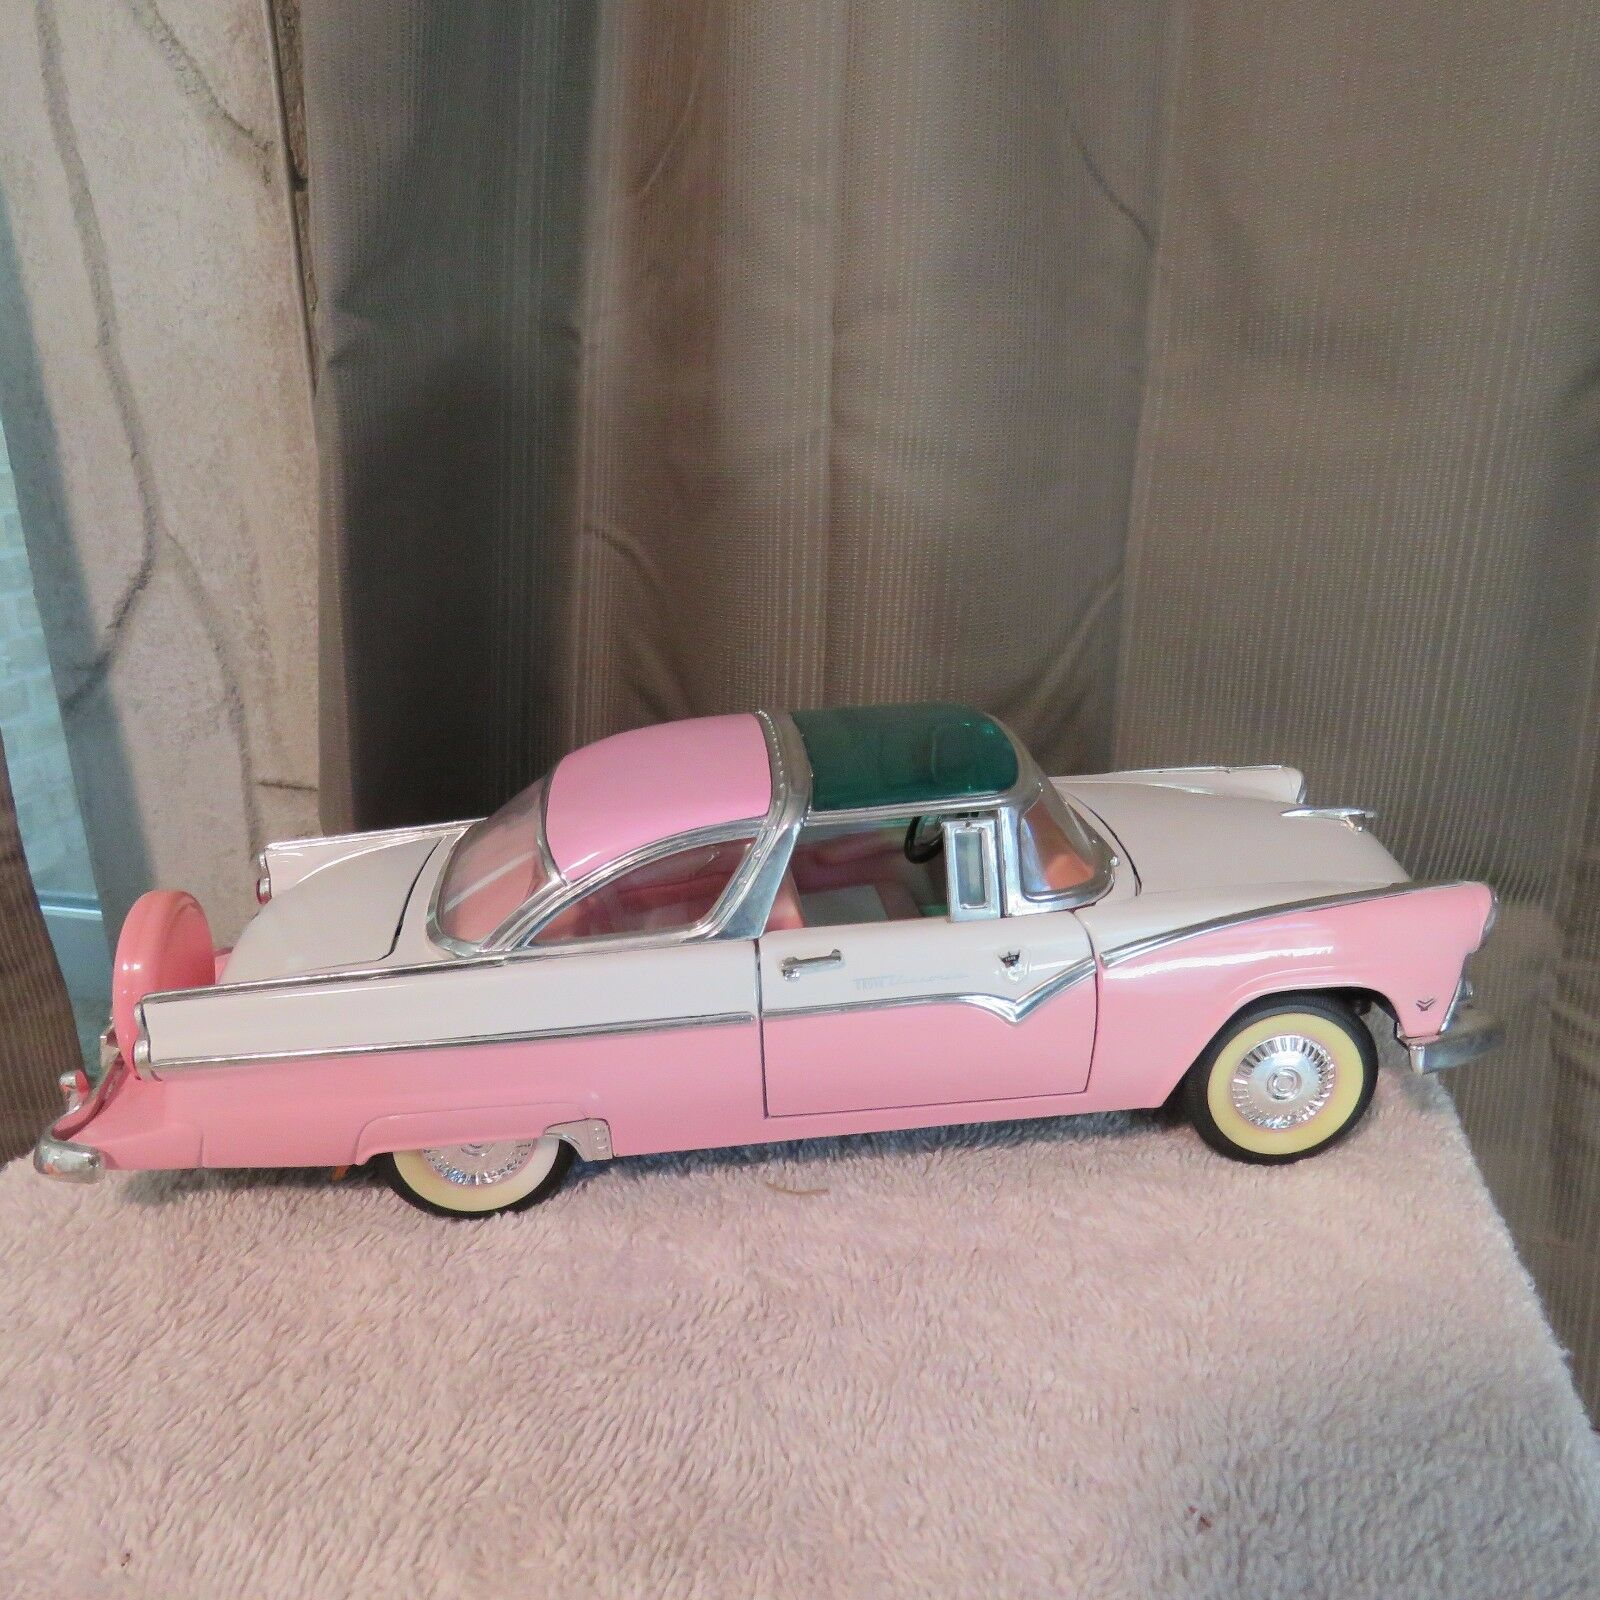 1955 FORD FAIRLANE CROWN VICTORIA ROAD TOUGH,1 18 SCALE DIE CAST,PINK WHITE